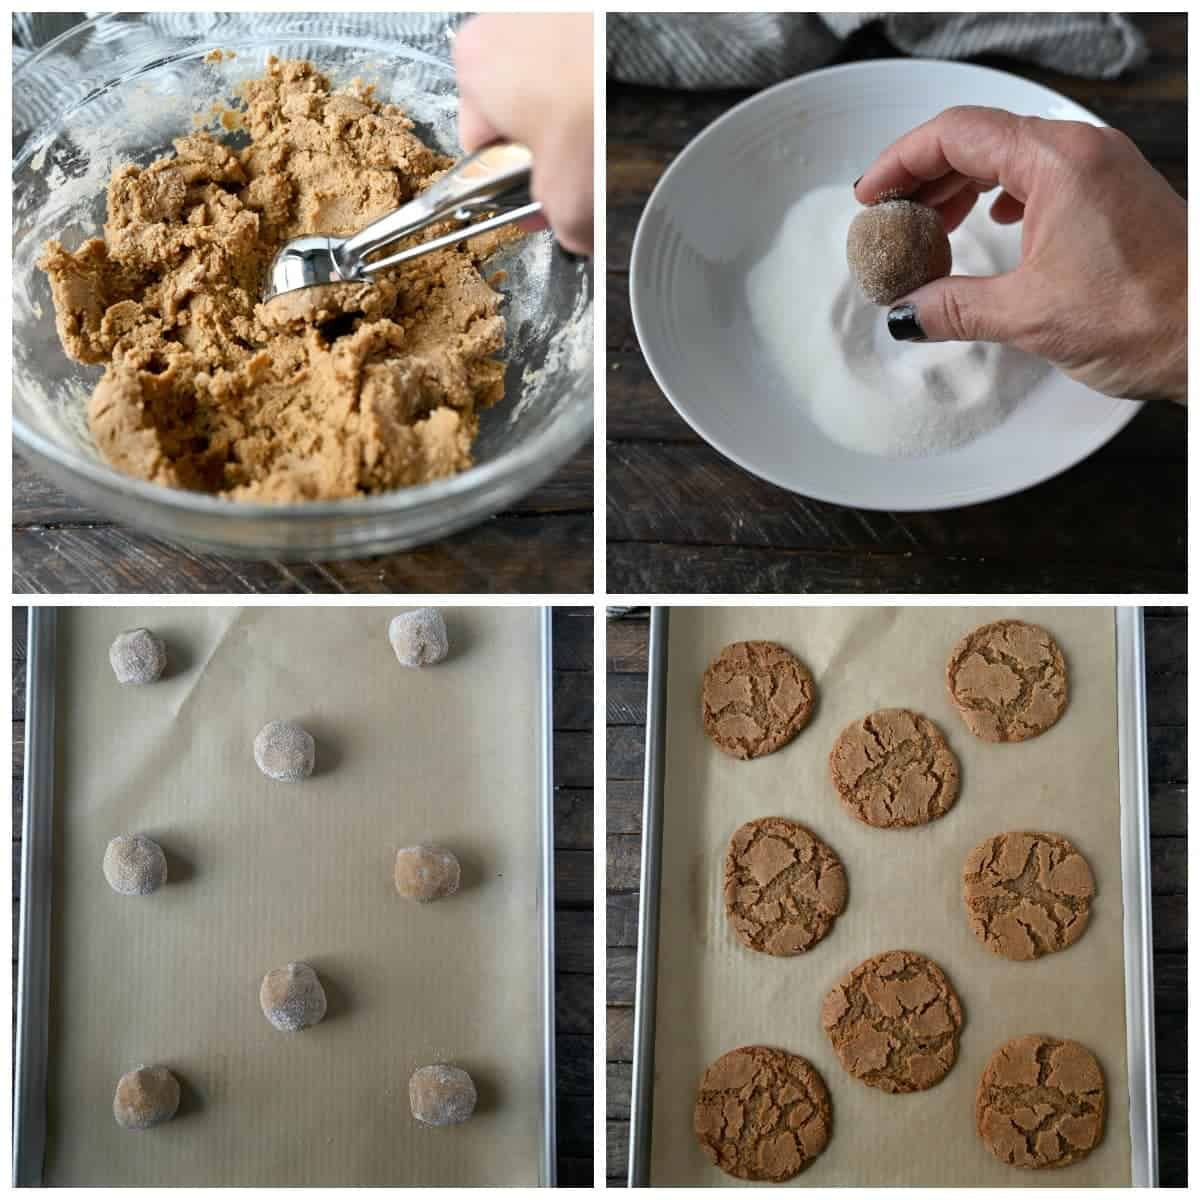 Four process photos, first one, a cookie scoop scooping out a dough ball. Second one, dough ball being rolled in granulated sugar. Third one, dough balls placed on a baking sheet covered with a piece of parchment paper. Fourth one, baked ginger snaps on a baking sheet covered with parchment paper.